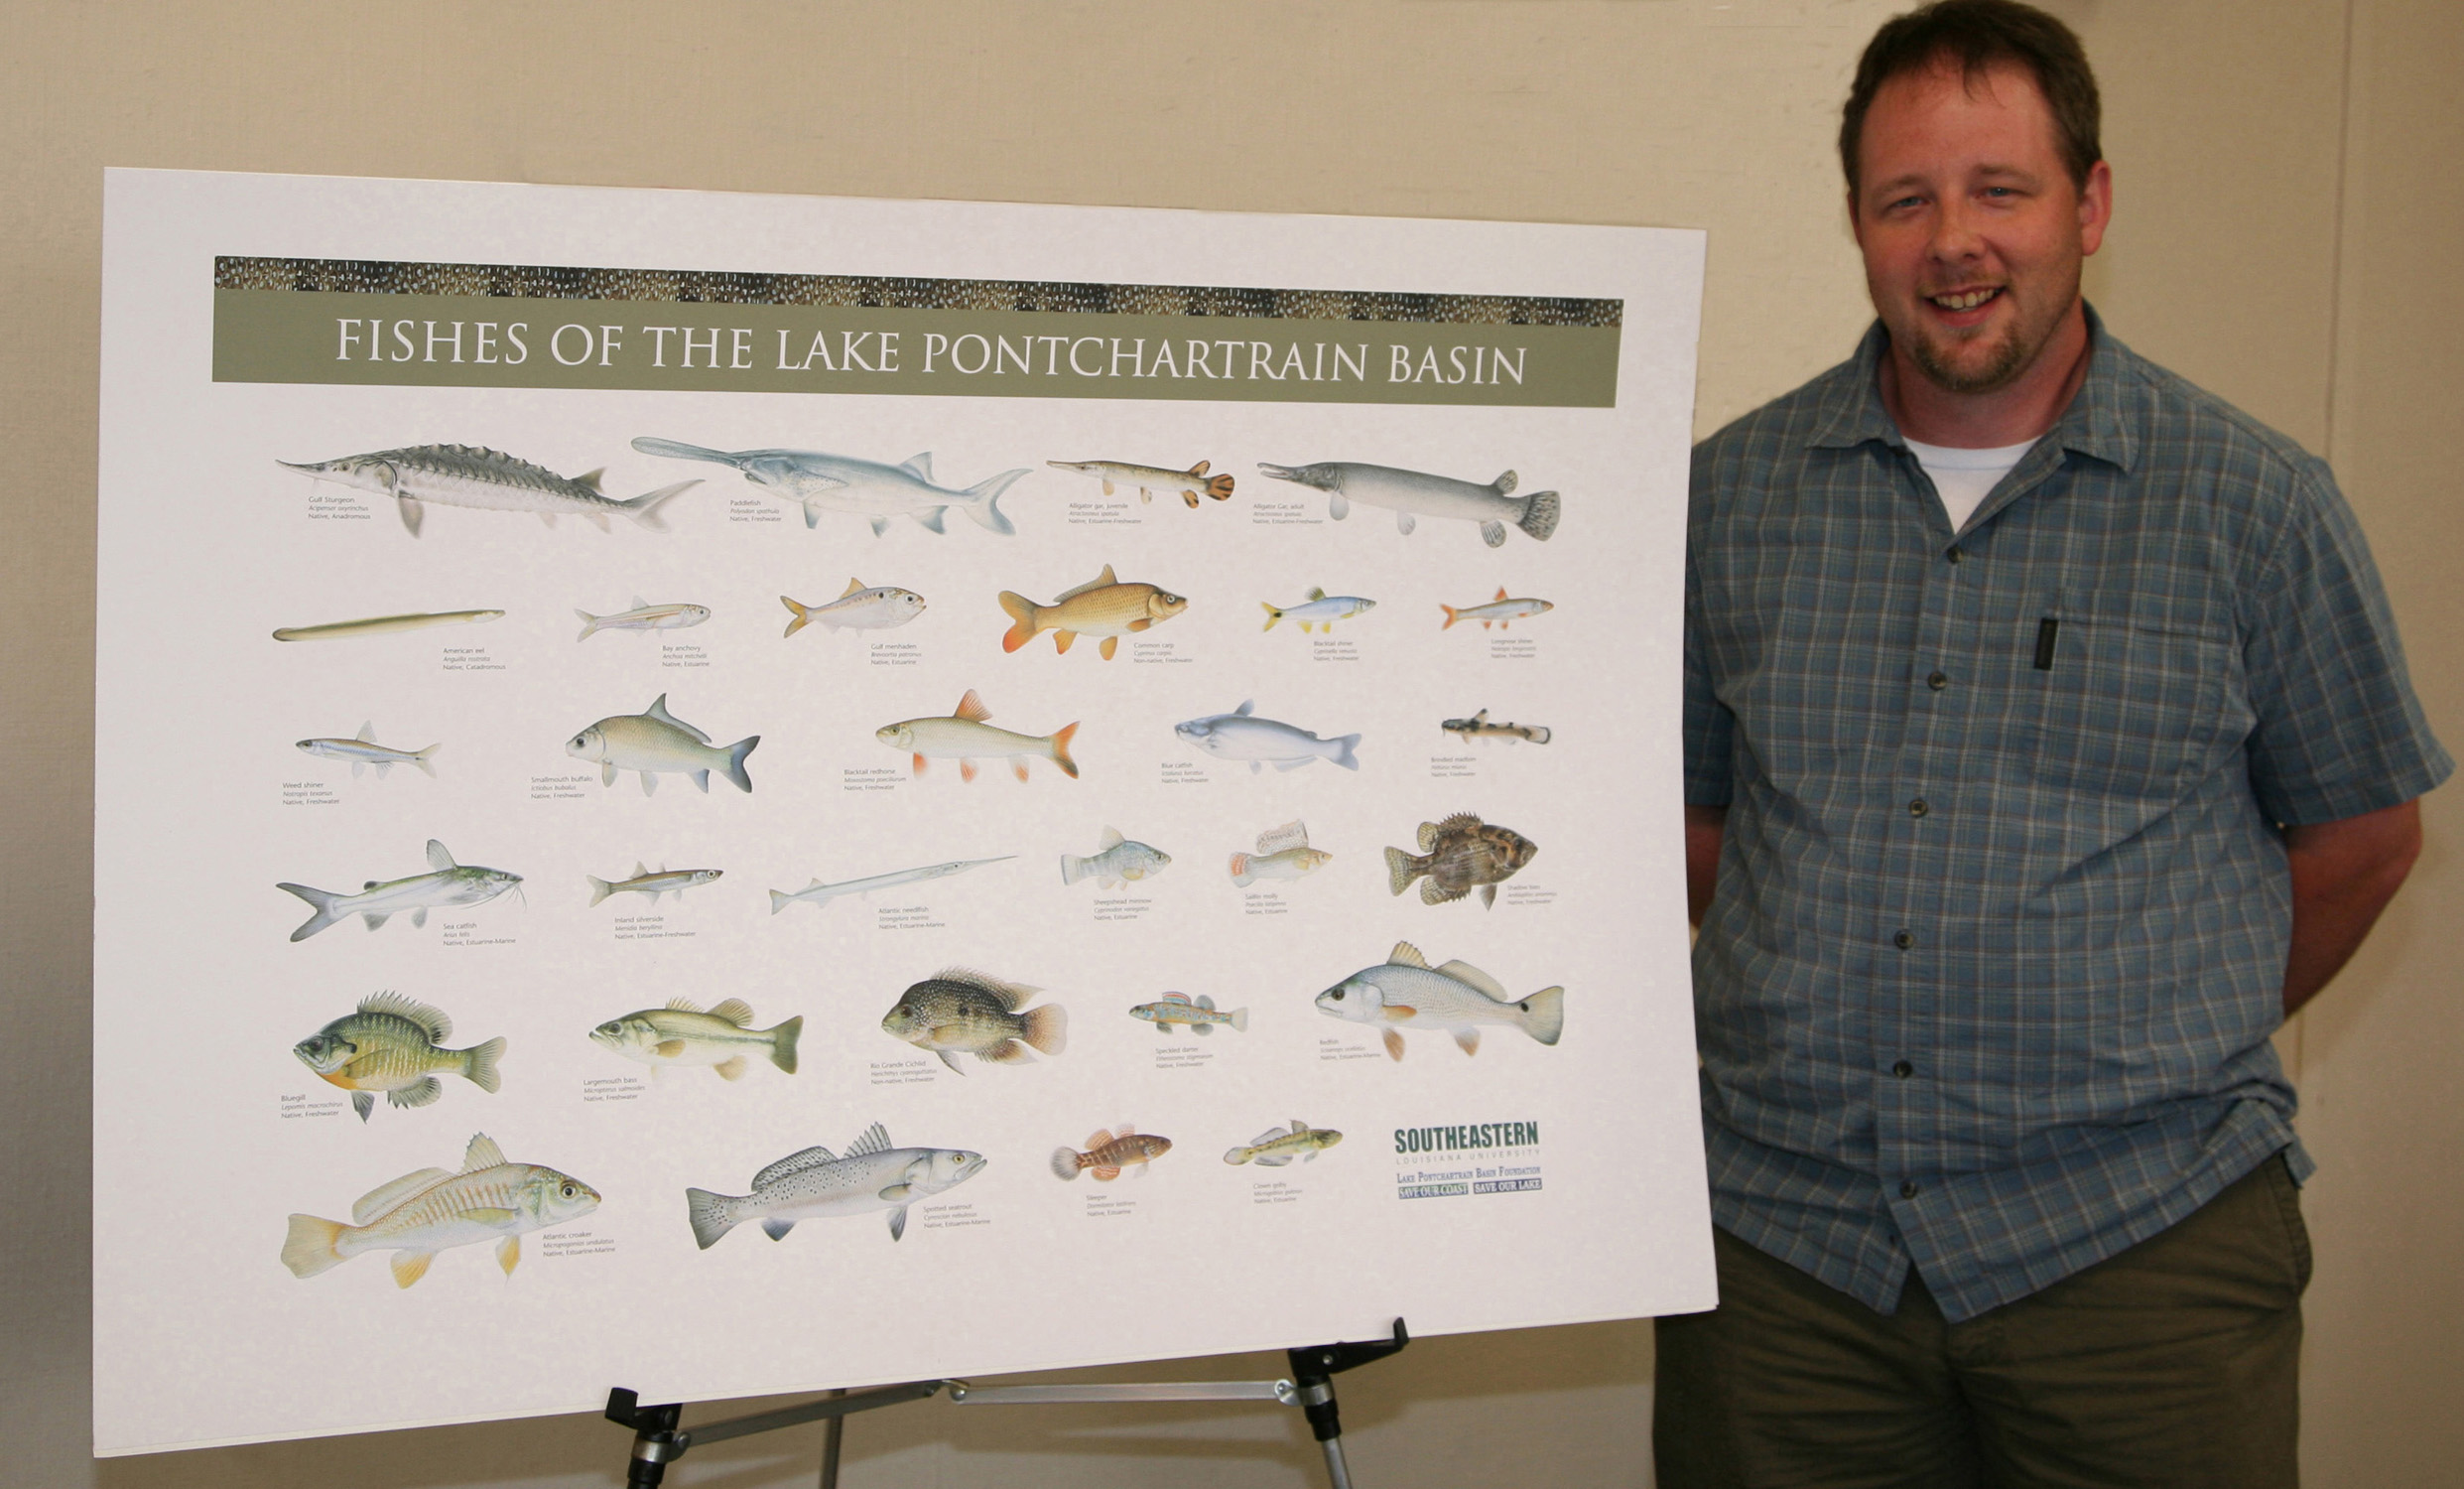 Project summary for Lake pontchartrain fish species